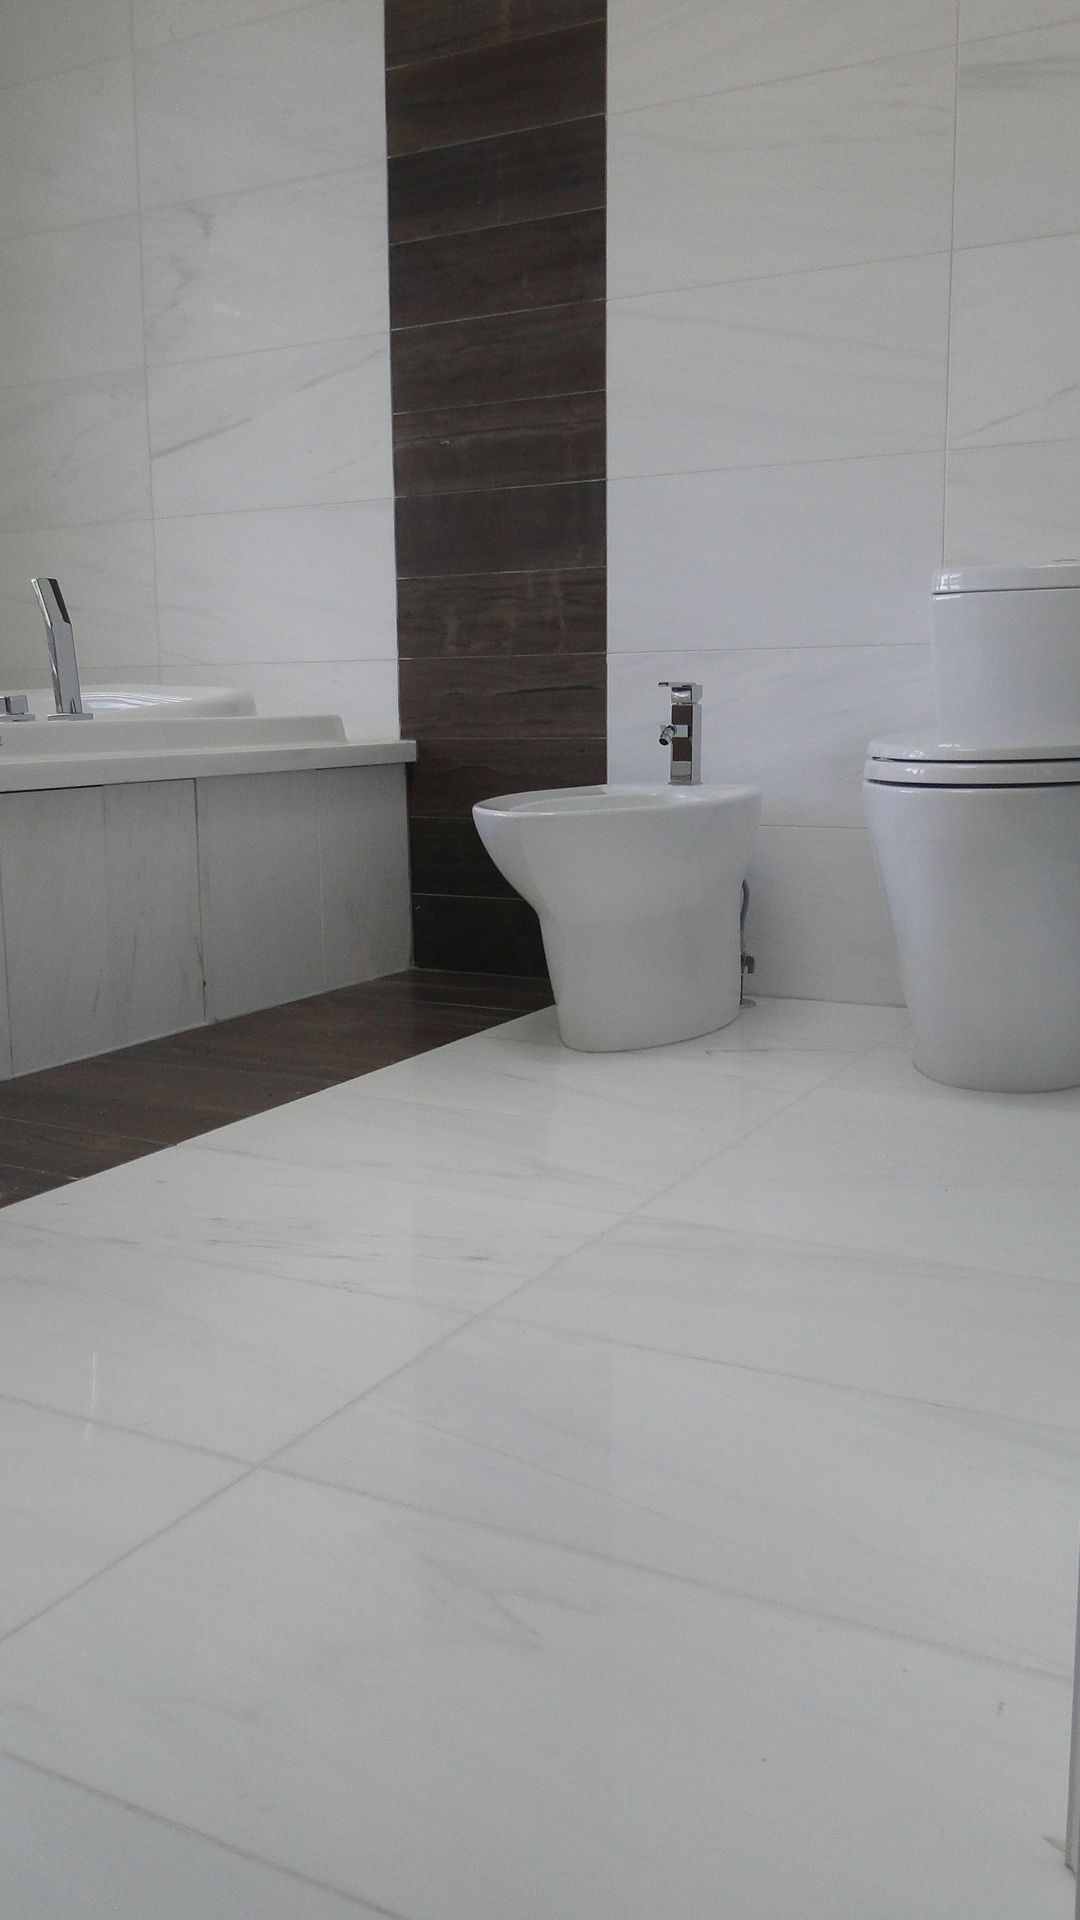 truffle veincut honed limestone and govana dolomite marble tile in